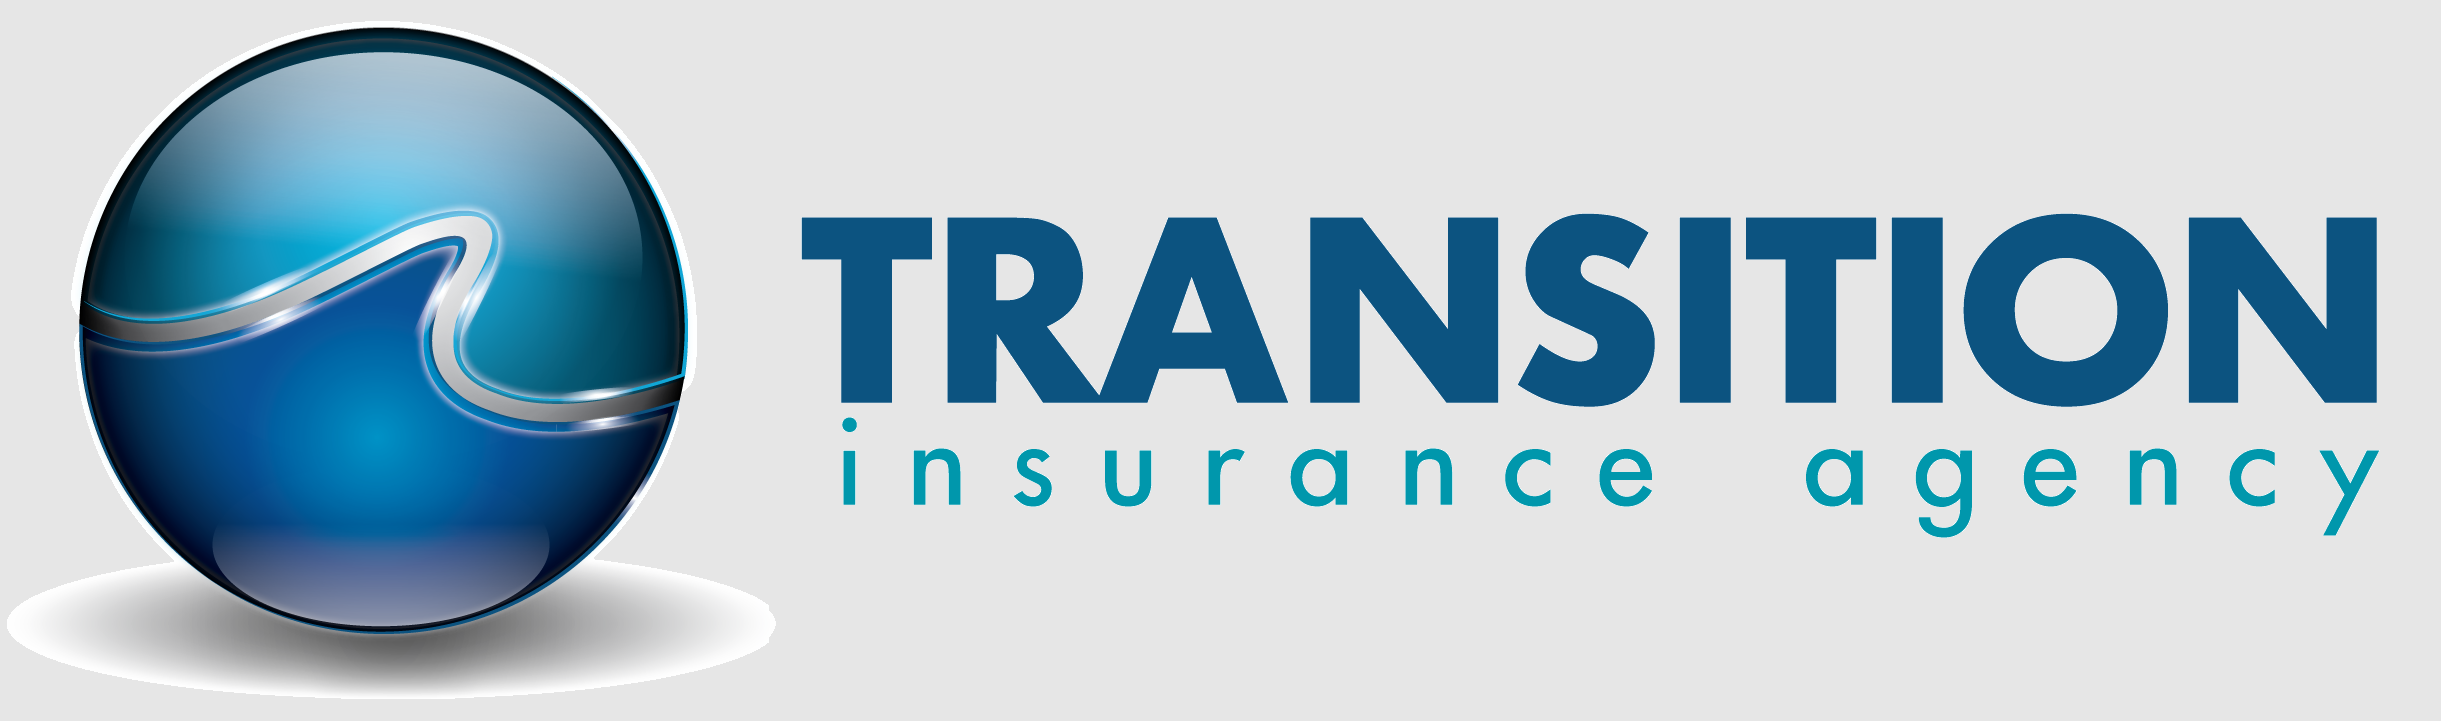 Transition Insurance Agency | Business Insurance Advisors | North Carolina Insurance | South Carolina Insurance | Georgia Insurance